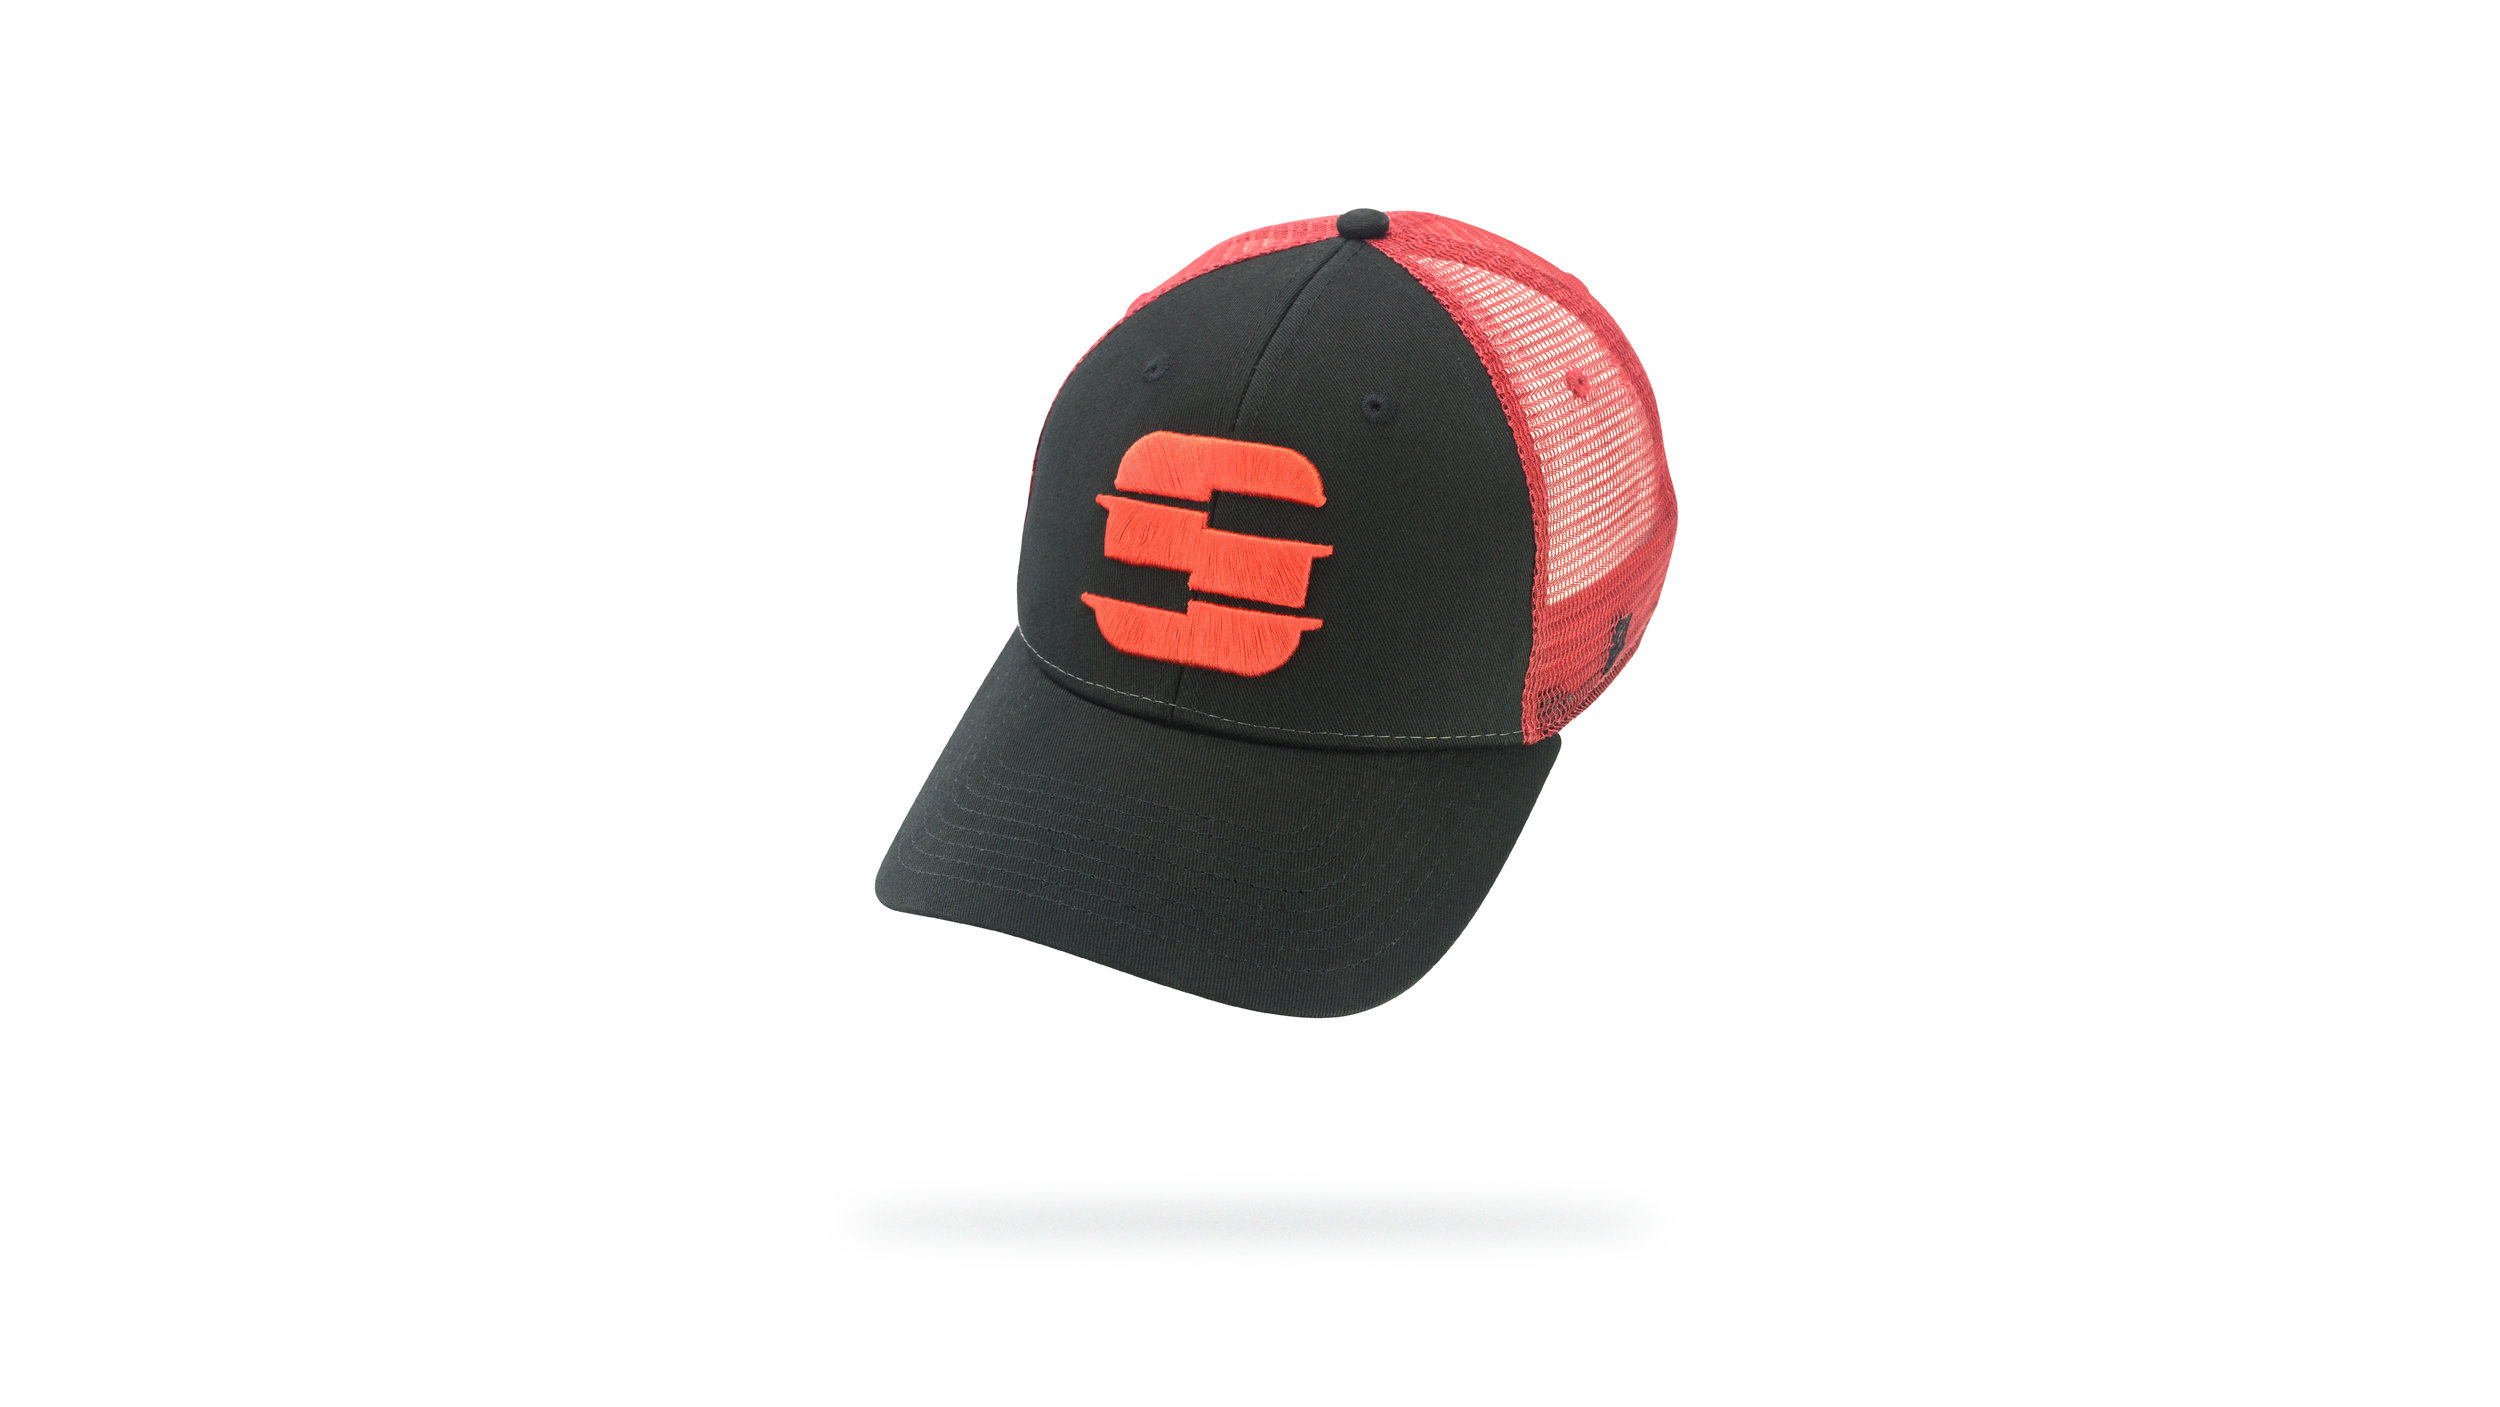 Featured Hat:STYLE IV - Vintage Trucker Snapback w/ 3D Embroidery